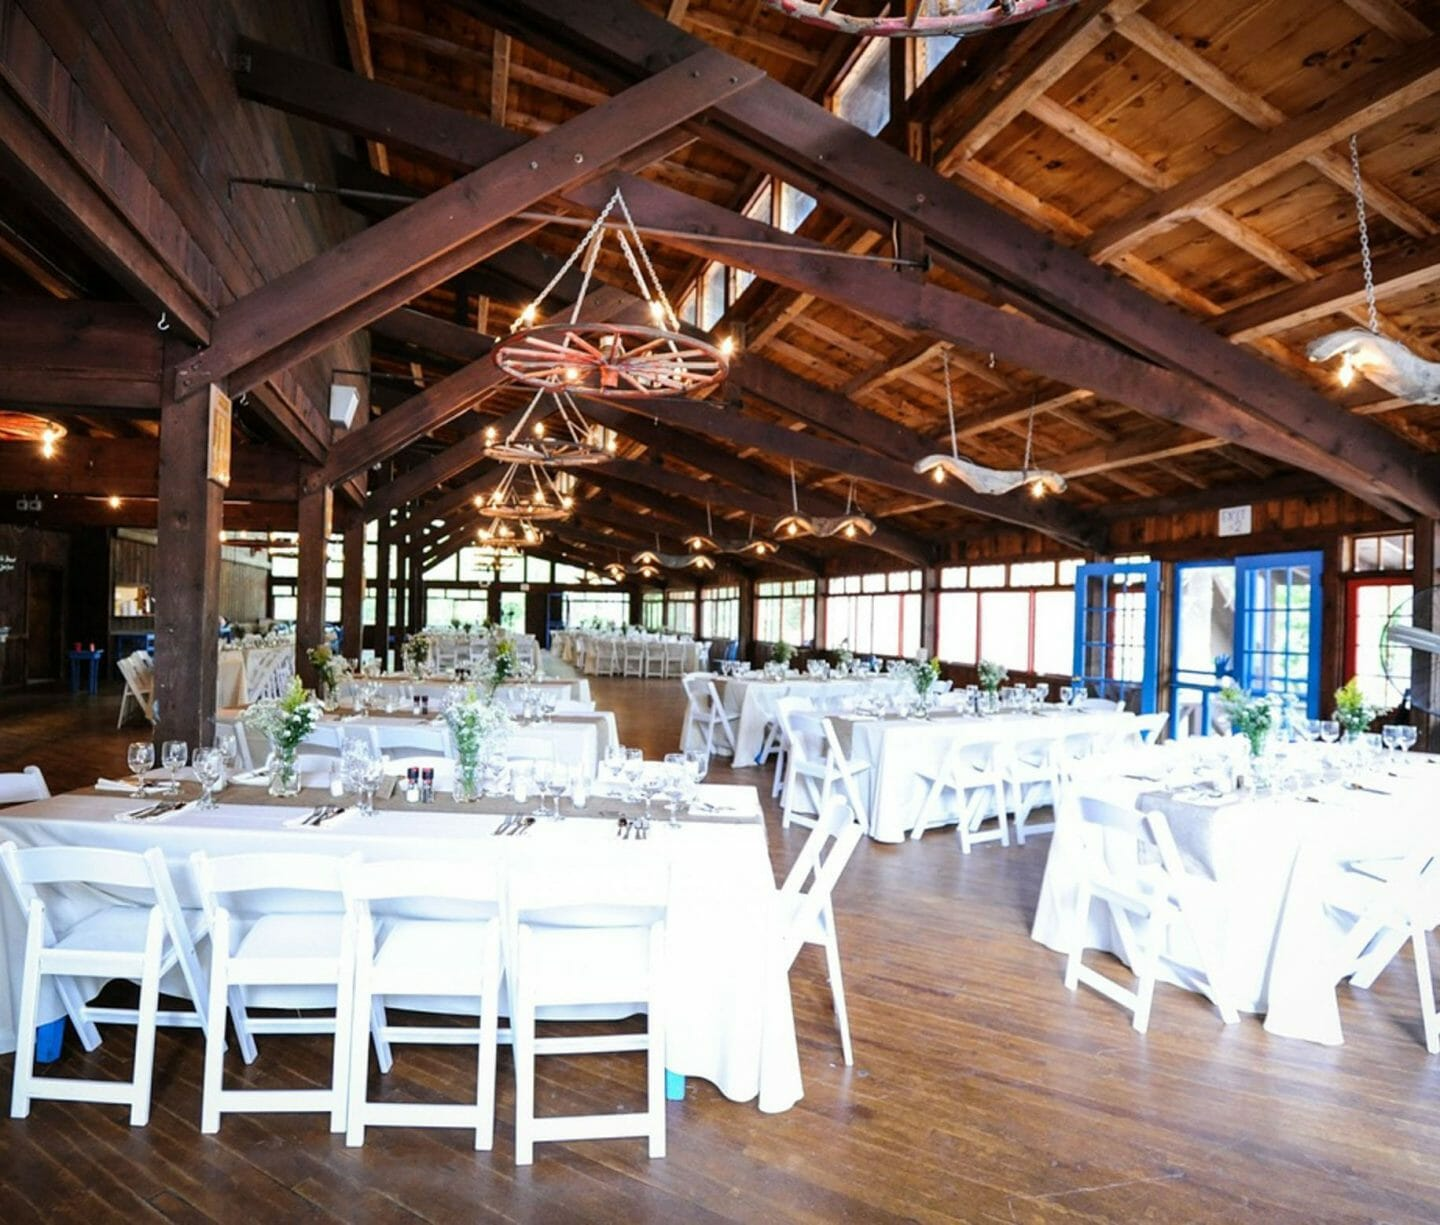 Dining hall decorated for a wedding